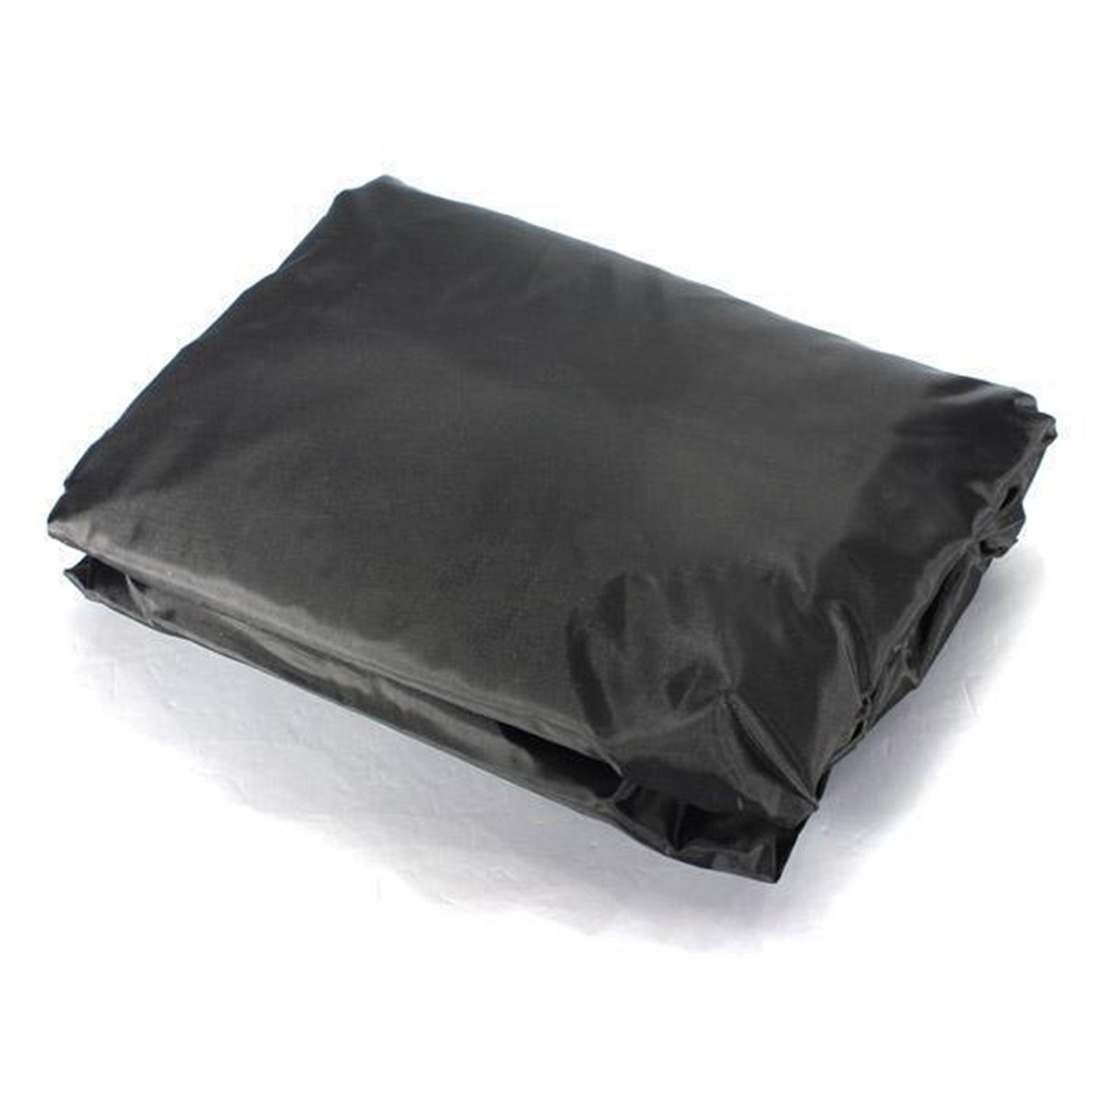 100x60x150cm Waterproof BBQ Cover Gas Barbecue Grill Protection Patio Outdoor Indoor Black